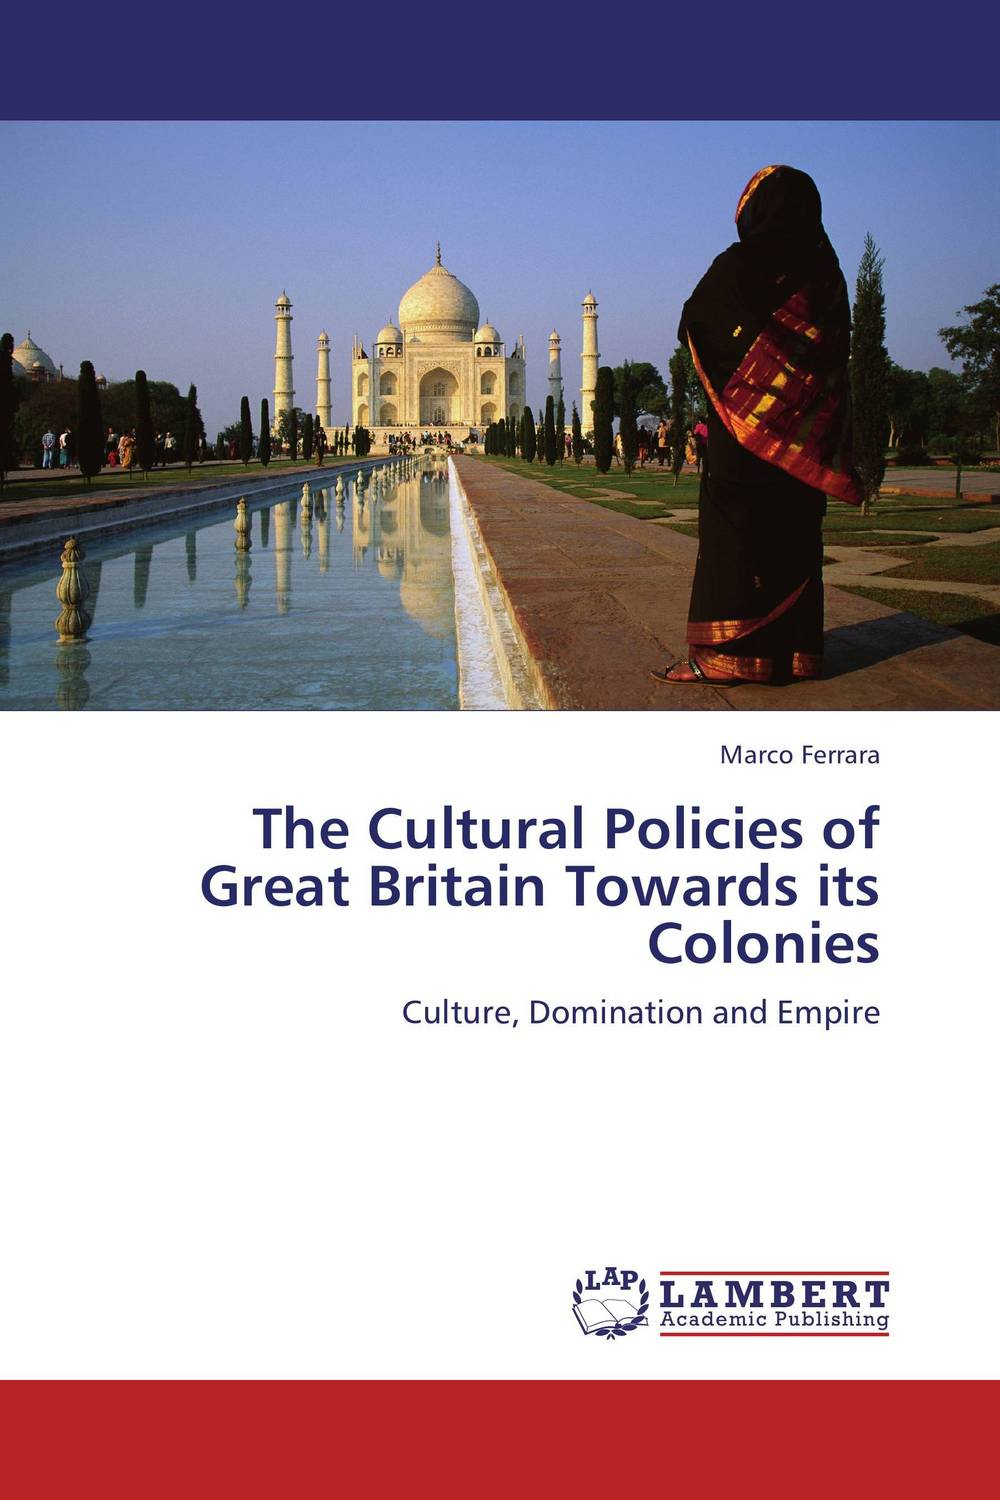 The Cultural Policies of Great Britain Towards its Colonies гацура г мебель английского классицизма хэпплуайт hepplewhite furniture of great britain